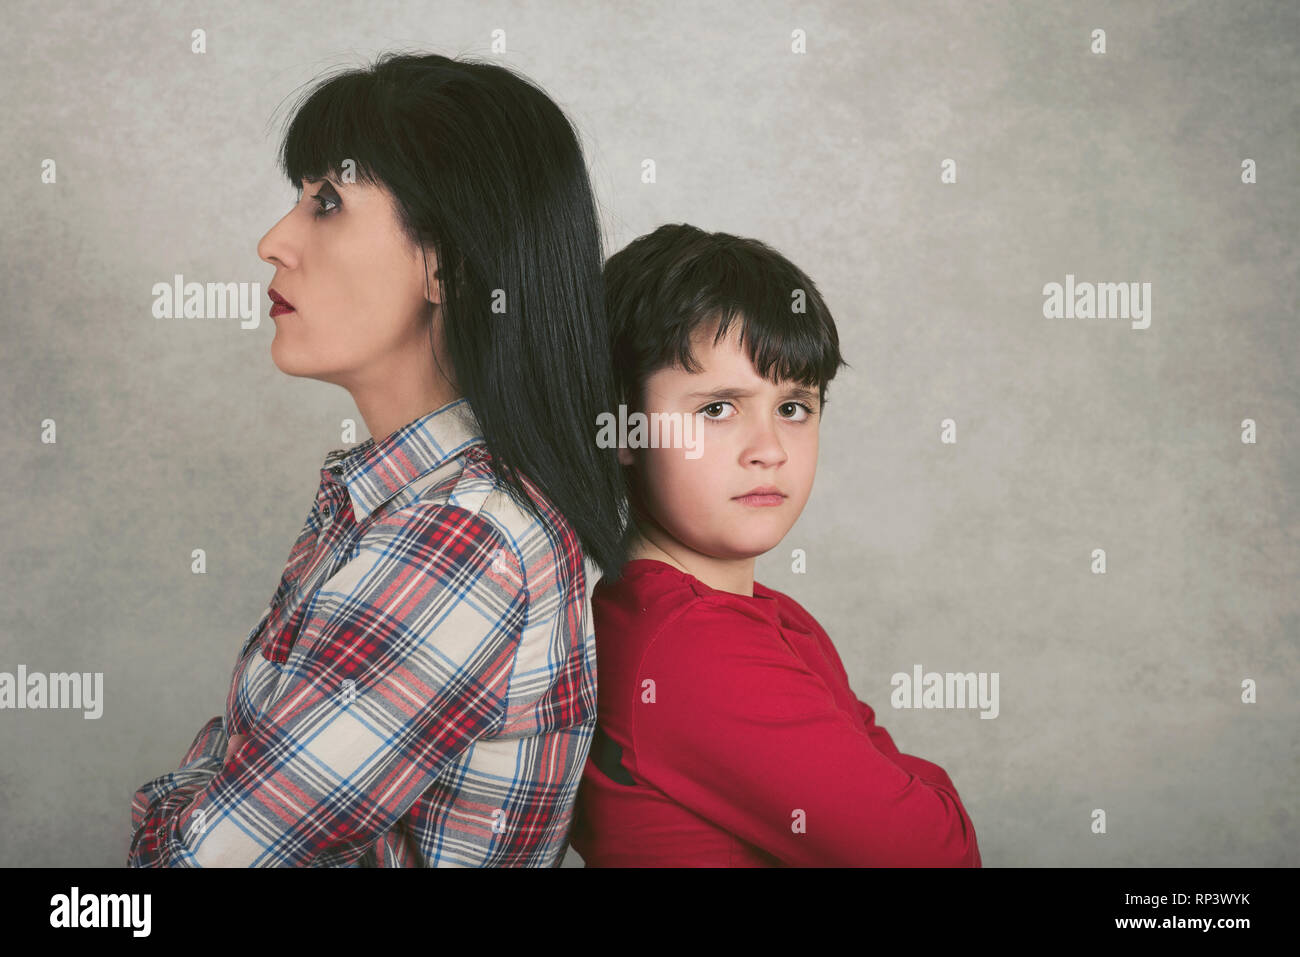 mother and son who are angry against gray background - Stock Image